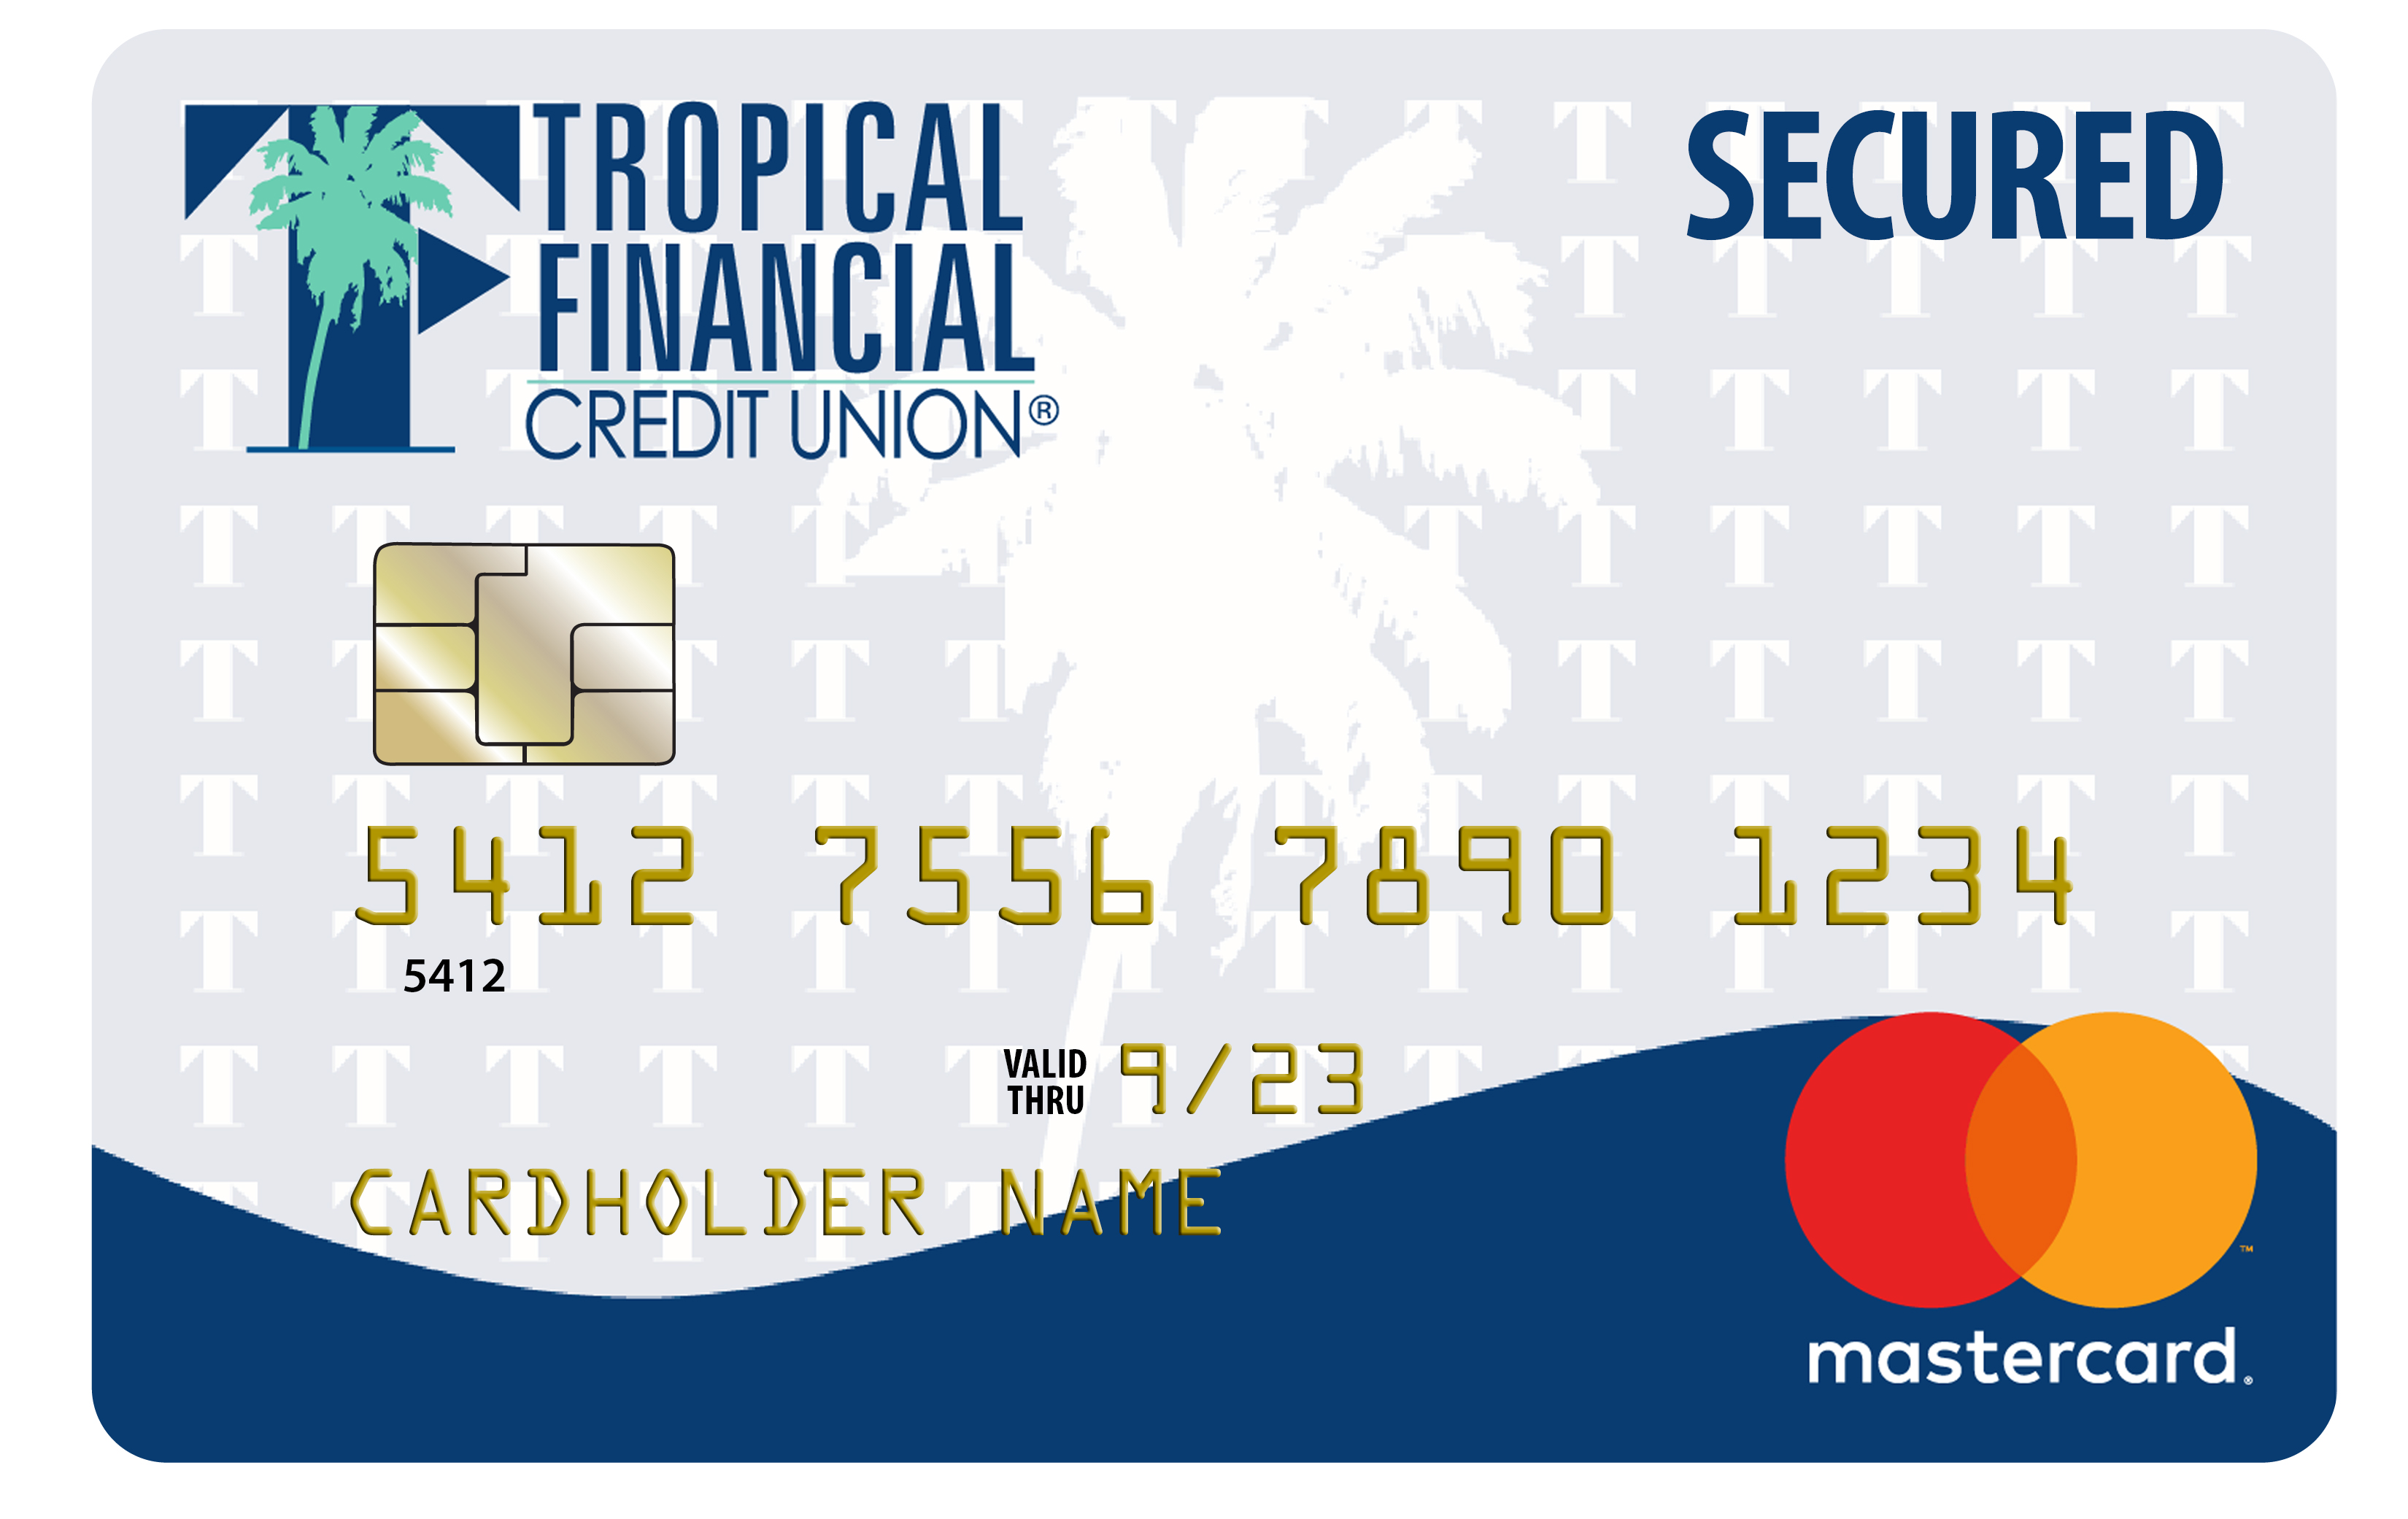 Secured mastercard